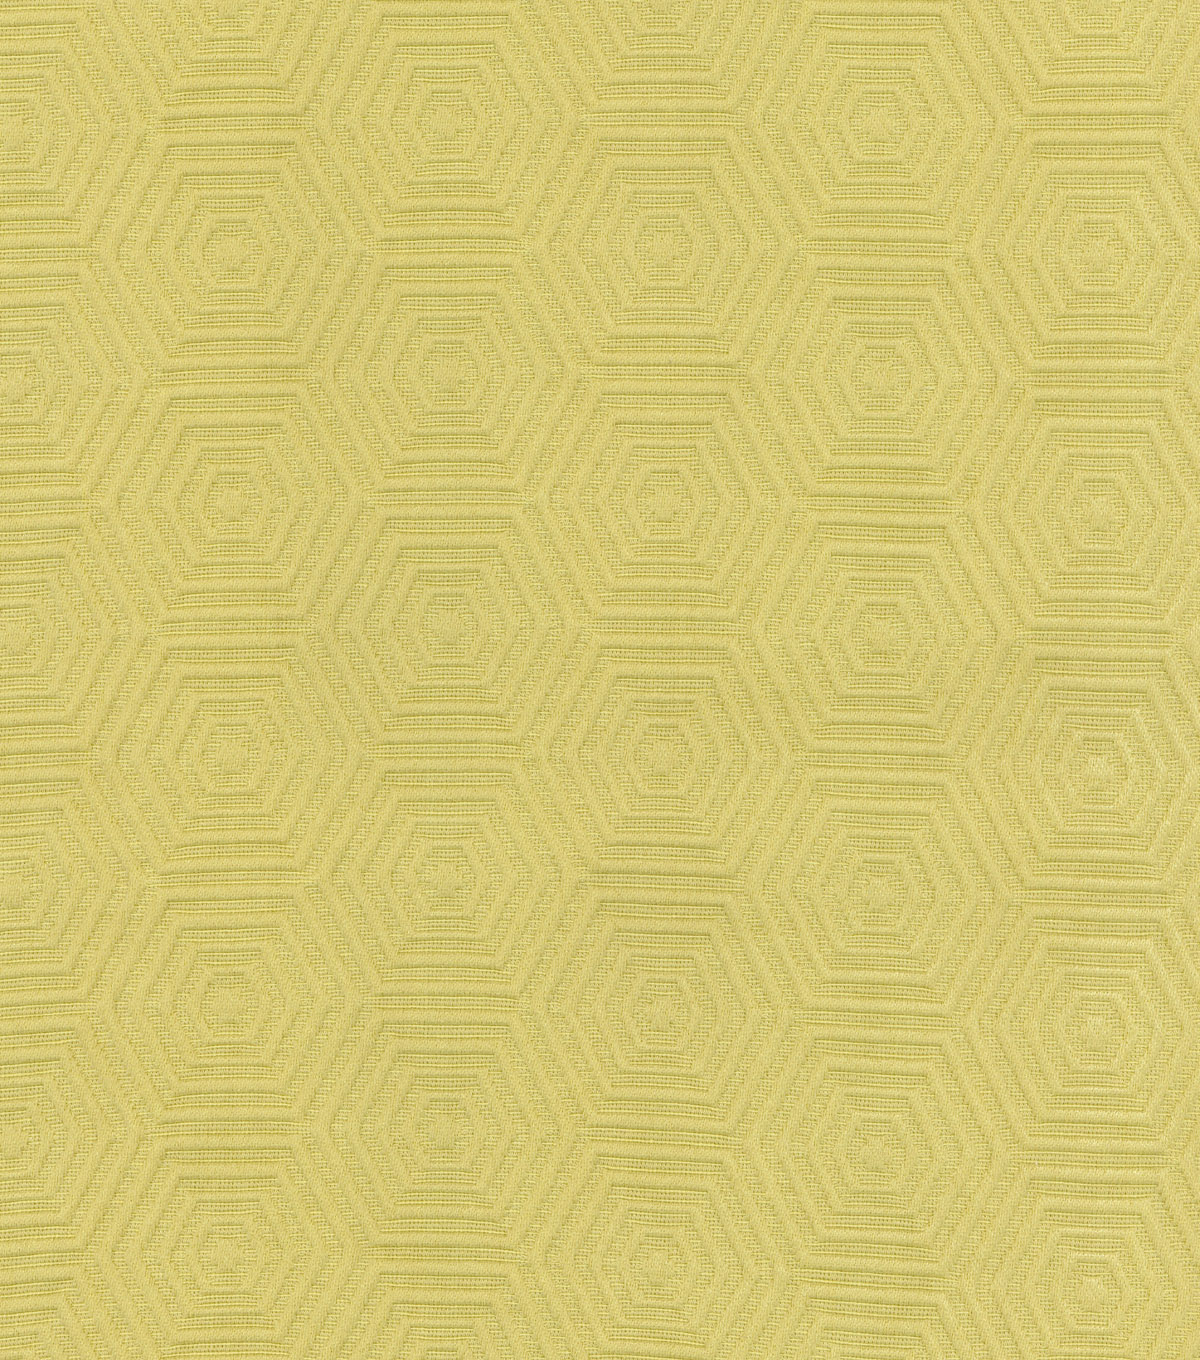 HGTV Home Solid Fabric 57\u0022-Hex Appeal/Wheatgrass